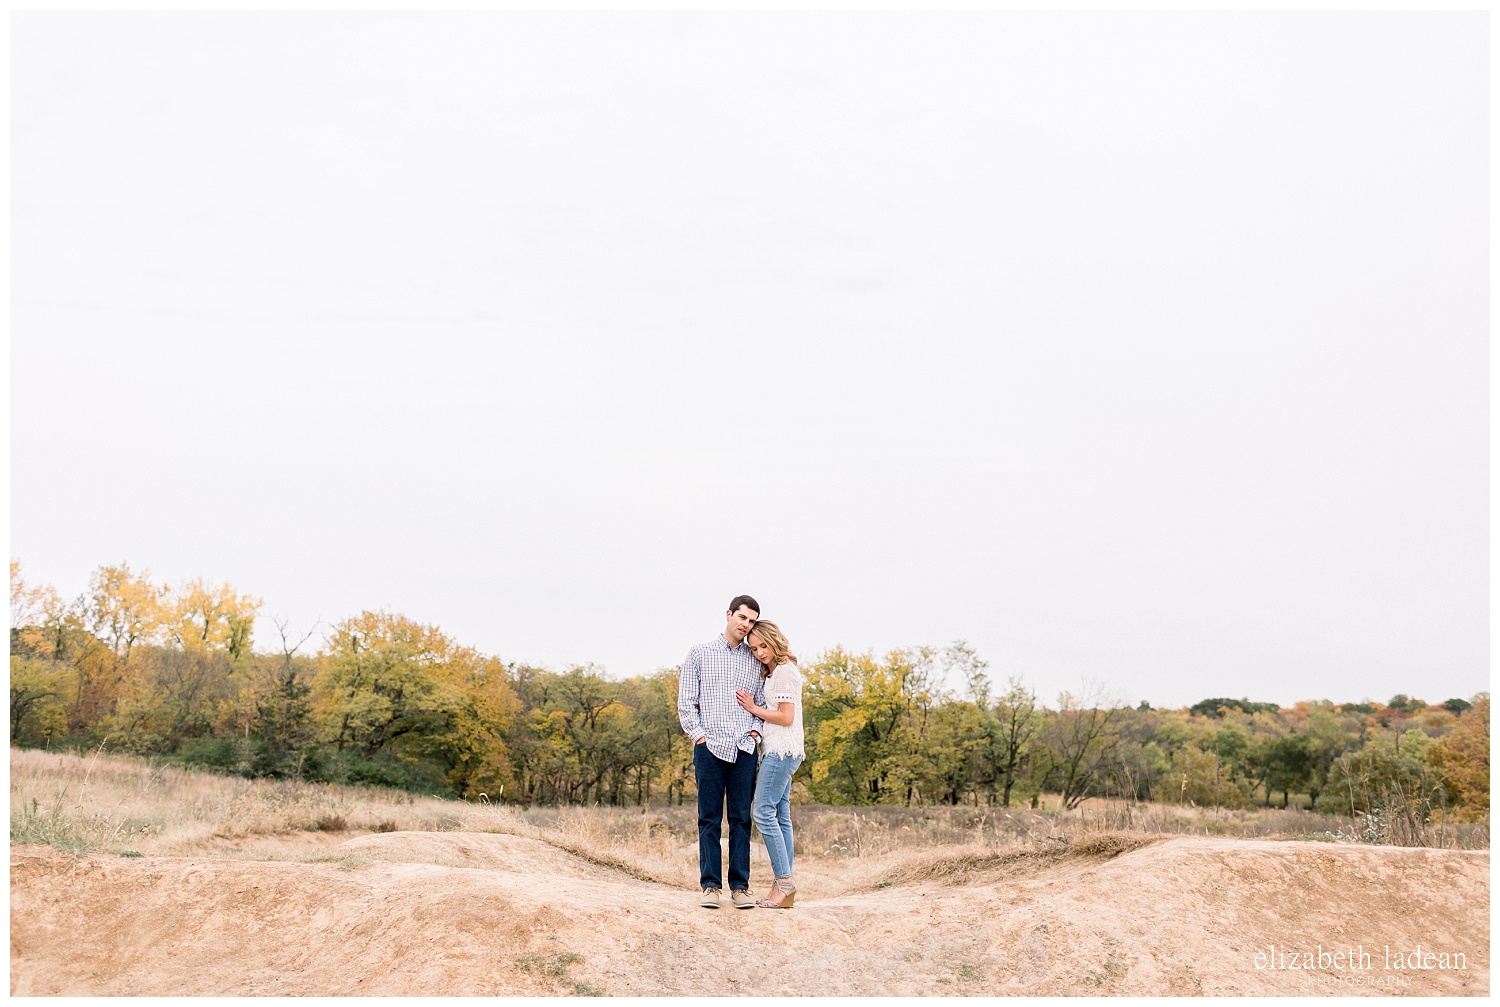 Colorful-Fall-Engagement-Photos-in-KC-C+B-2018-elizabeth-ladean-photography-photo_1791.jpg